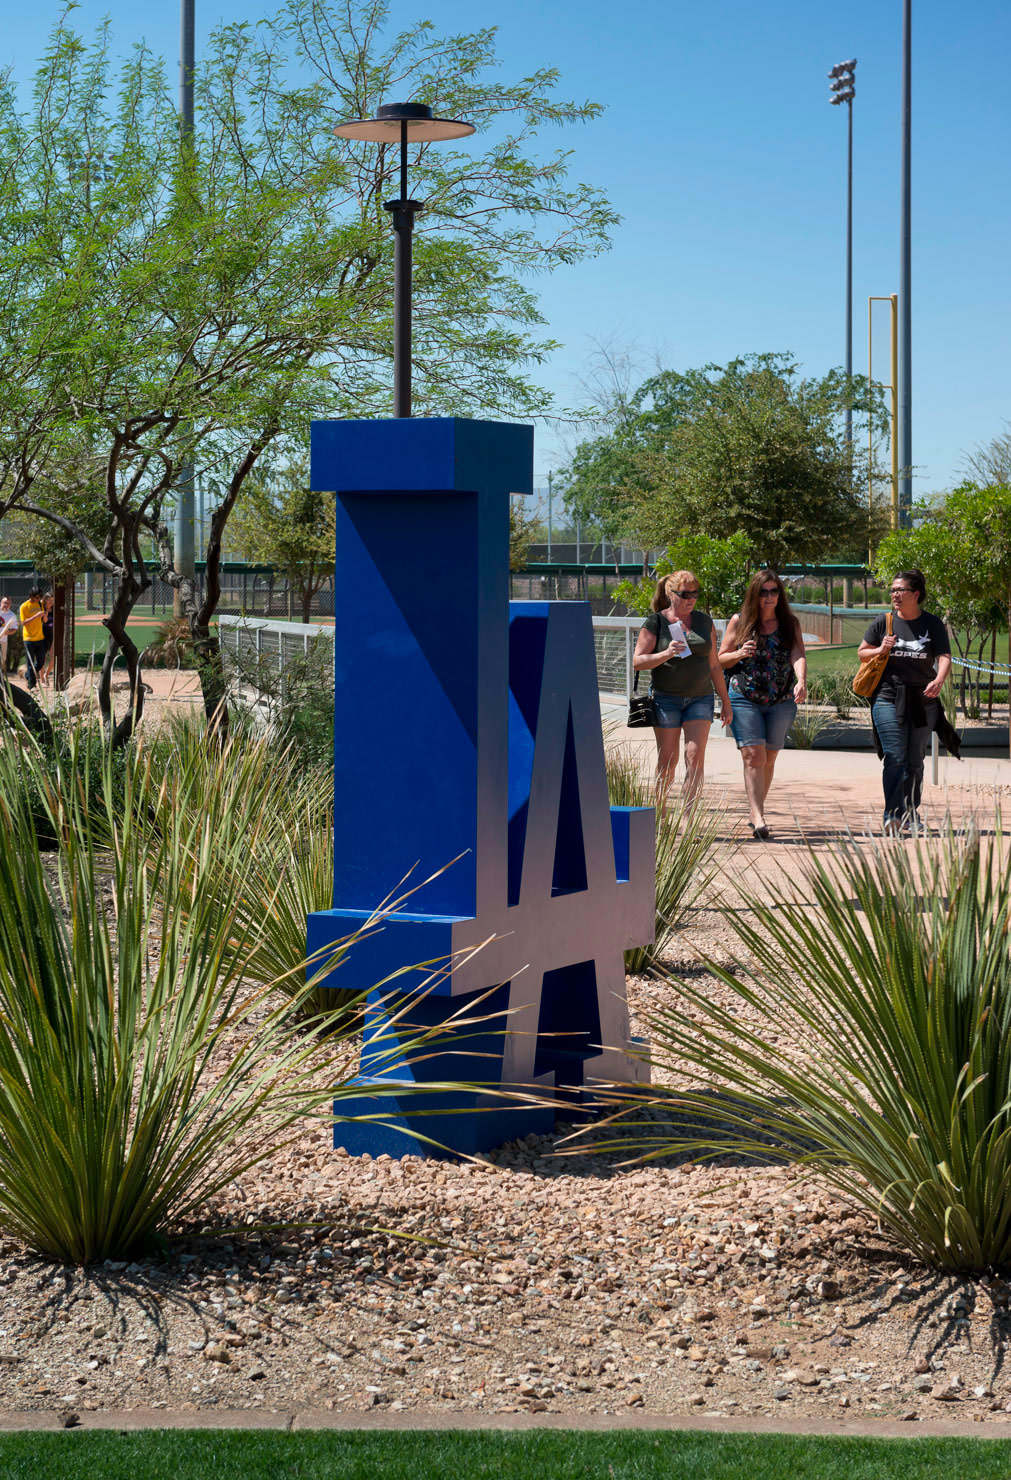 Environmental graphics for Camelback Ranch / Dodger's Spring Training facility. Designed by Younts Design Inc. @enviromean